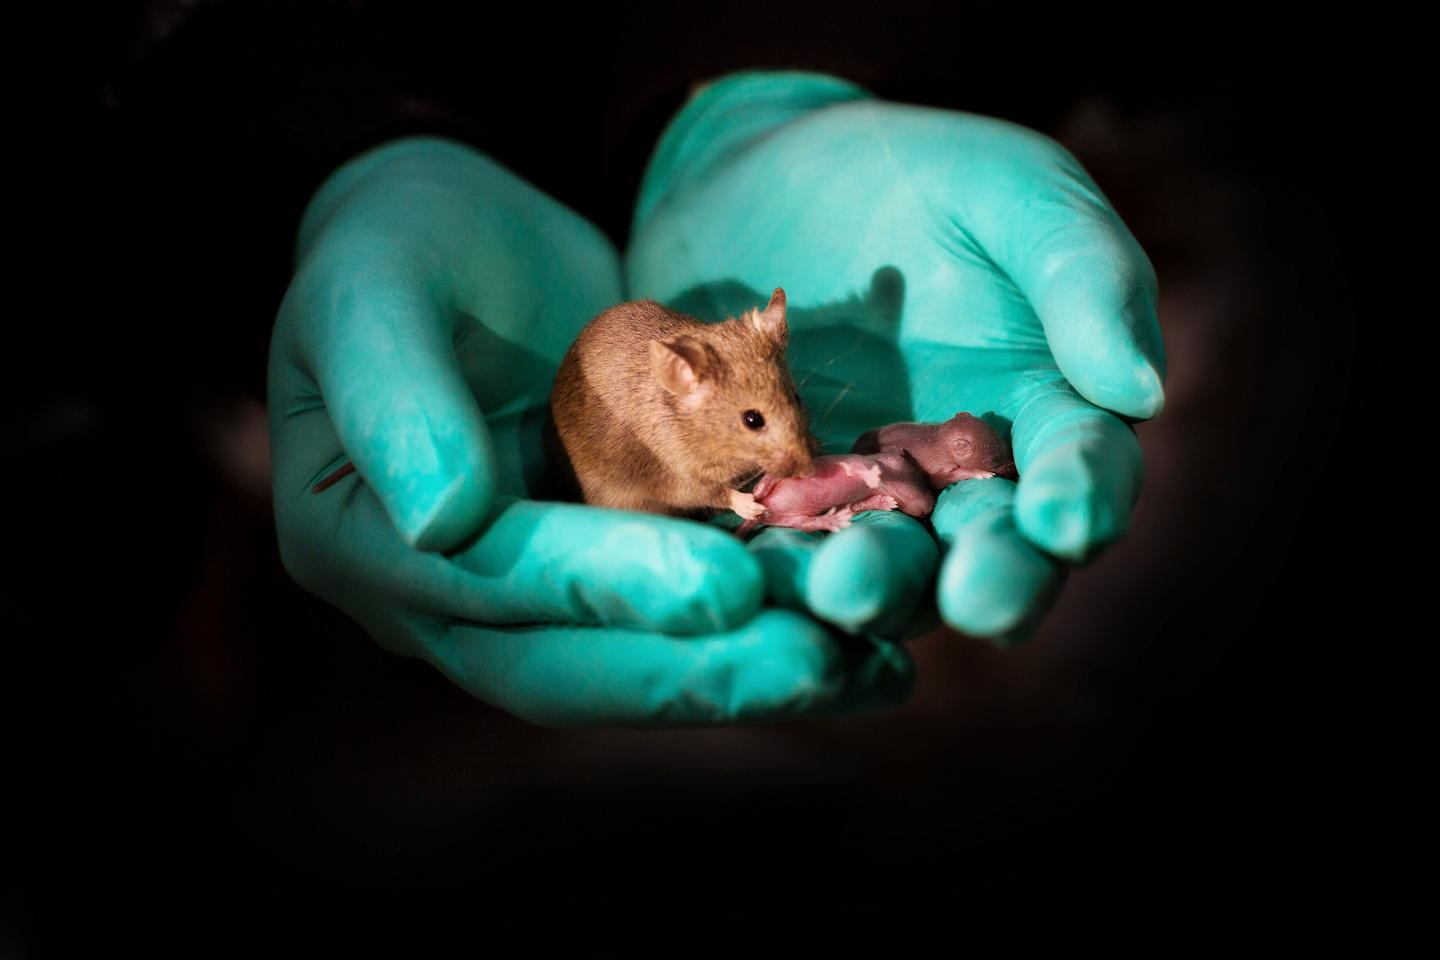 Healthy mice born from two genetic mothers using stem cells, gene editing